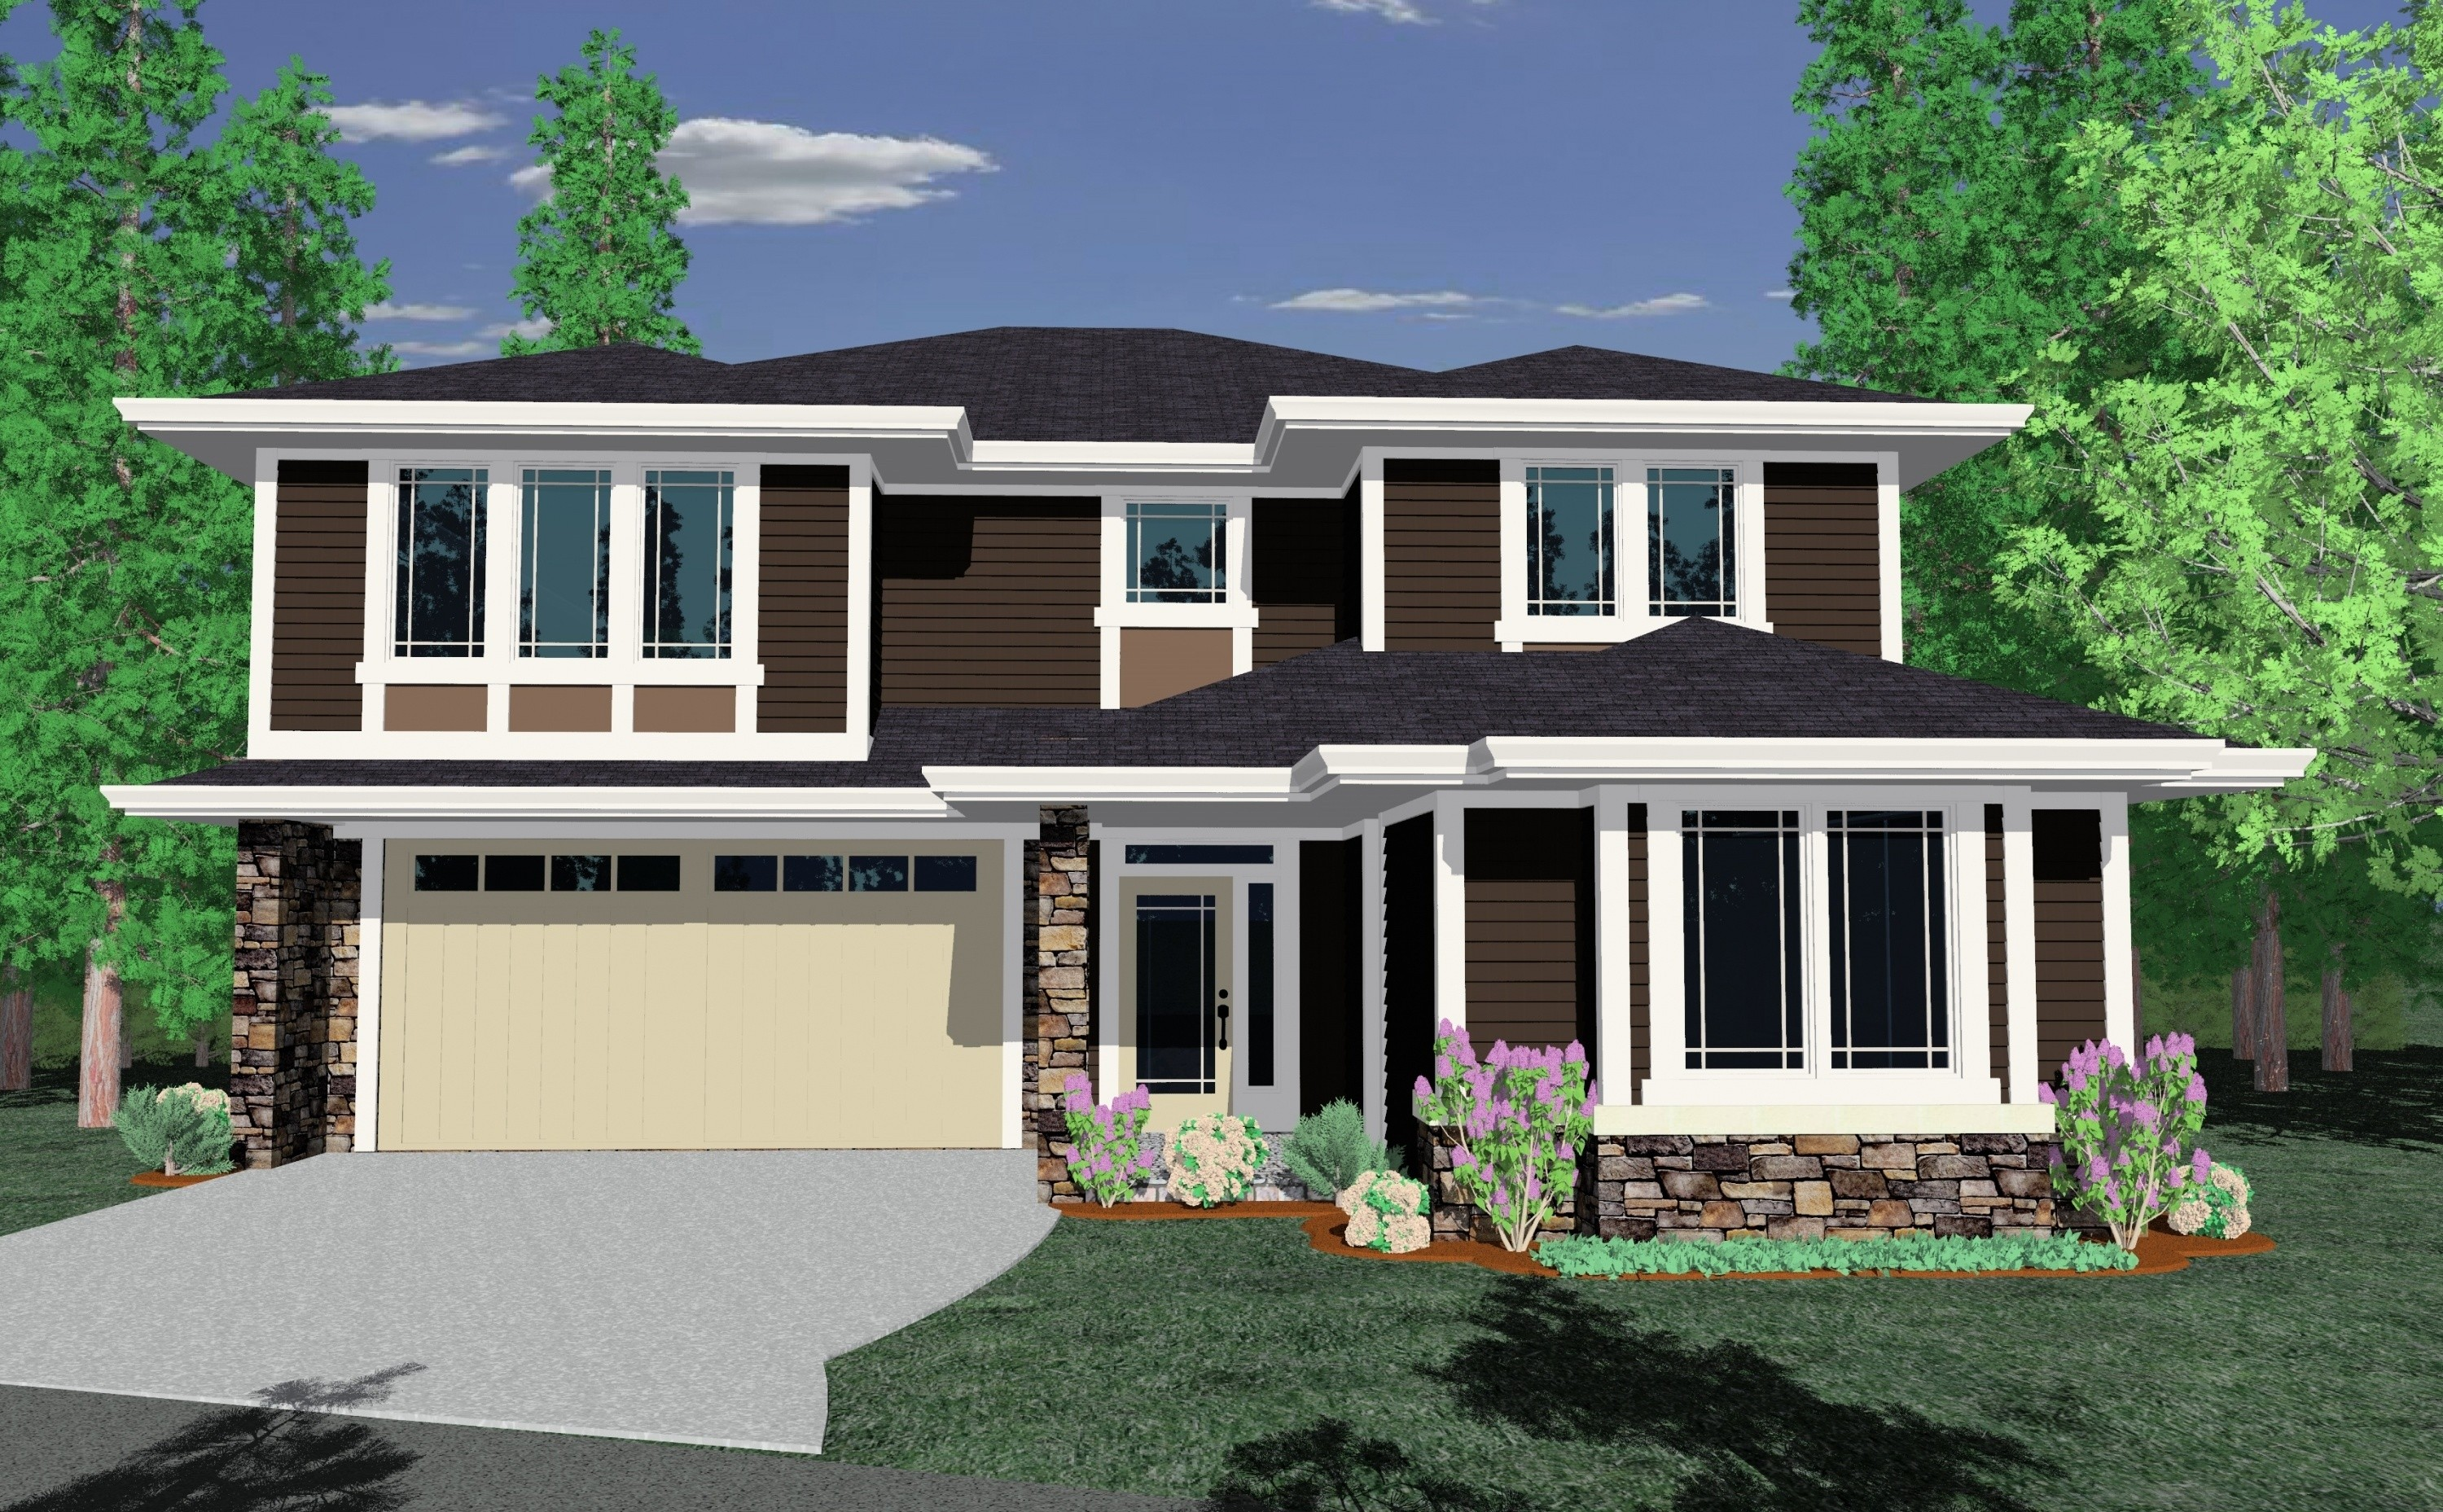 Bright plains house plan northwest modern house plans for Bright house design